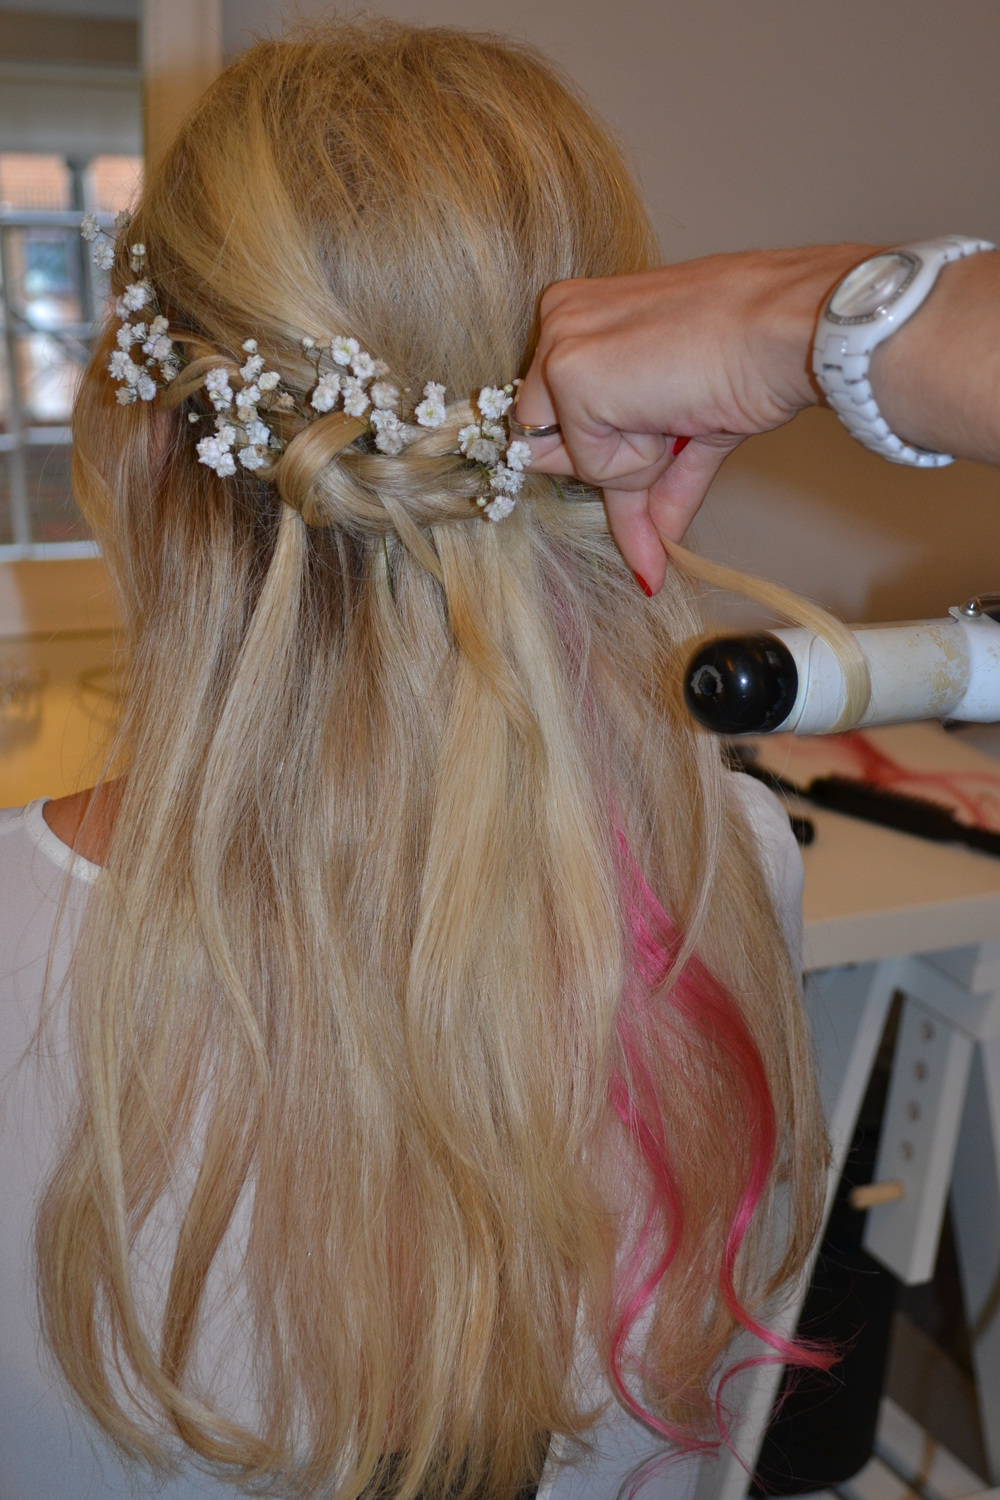 Hair Half Up With Waves & Braids